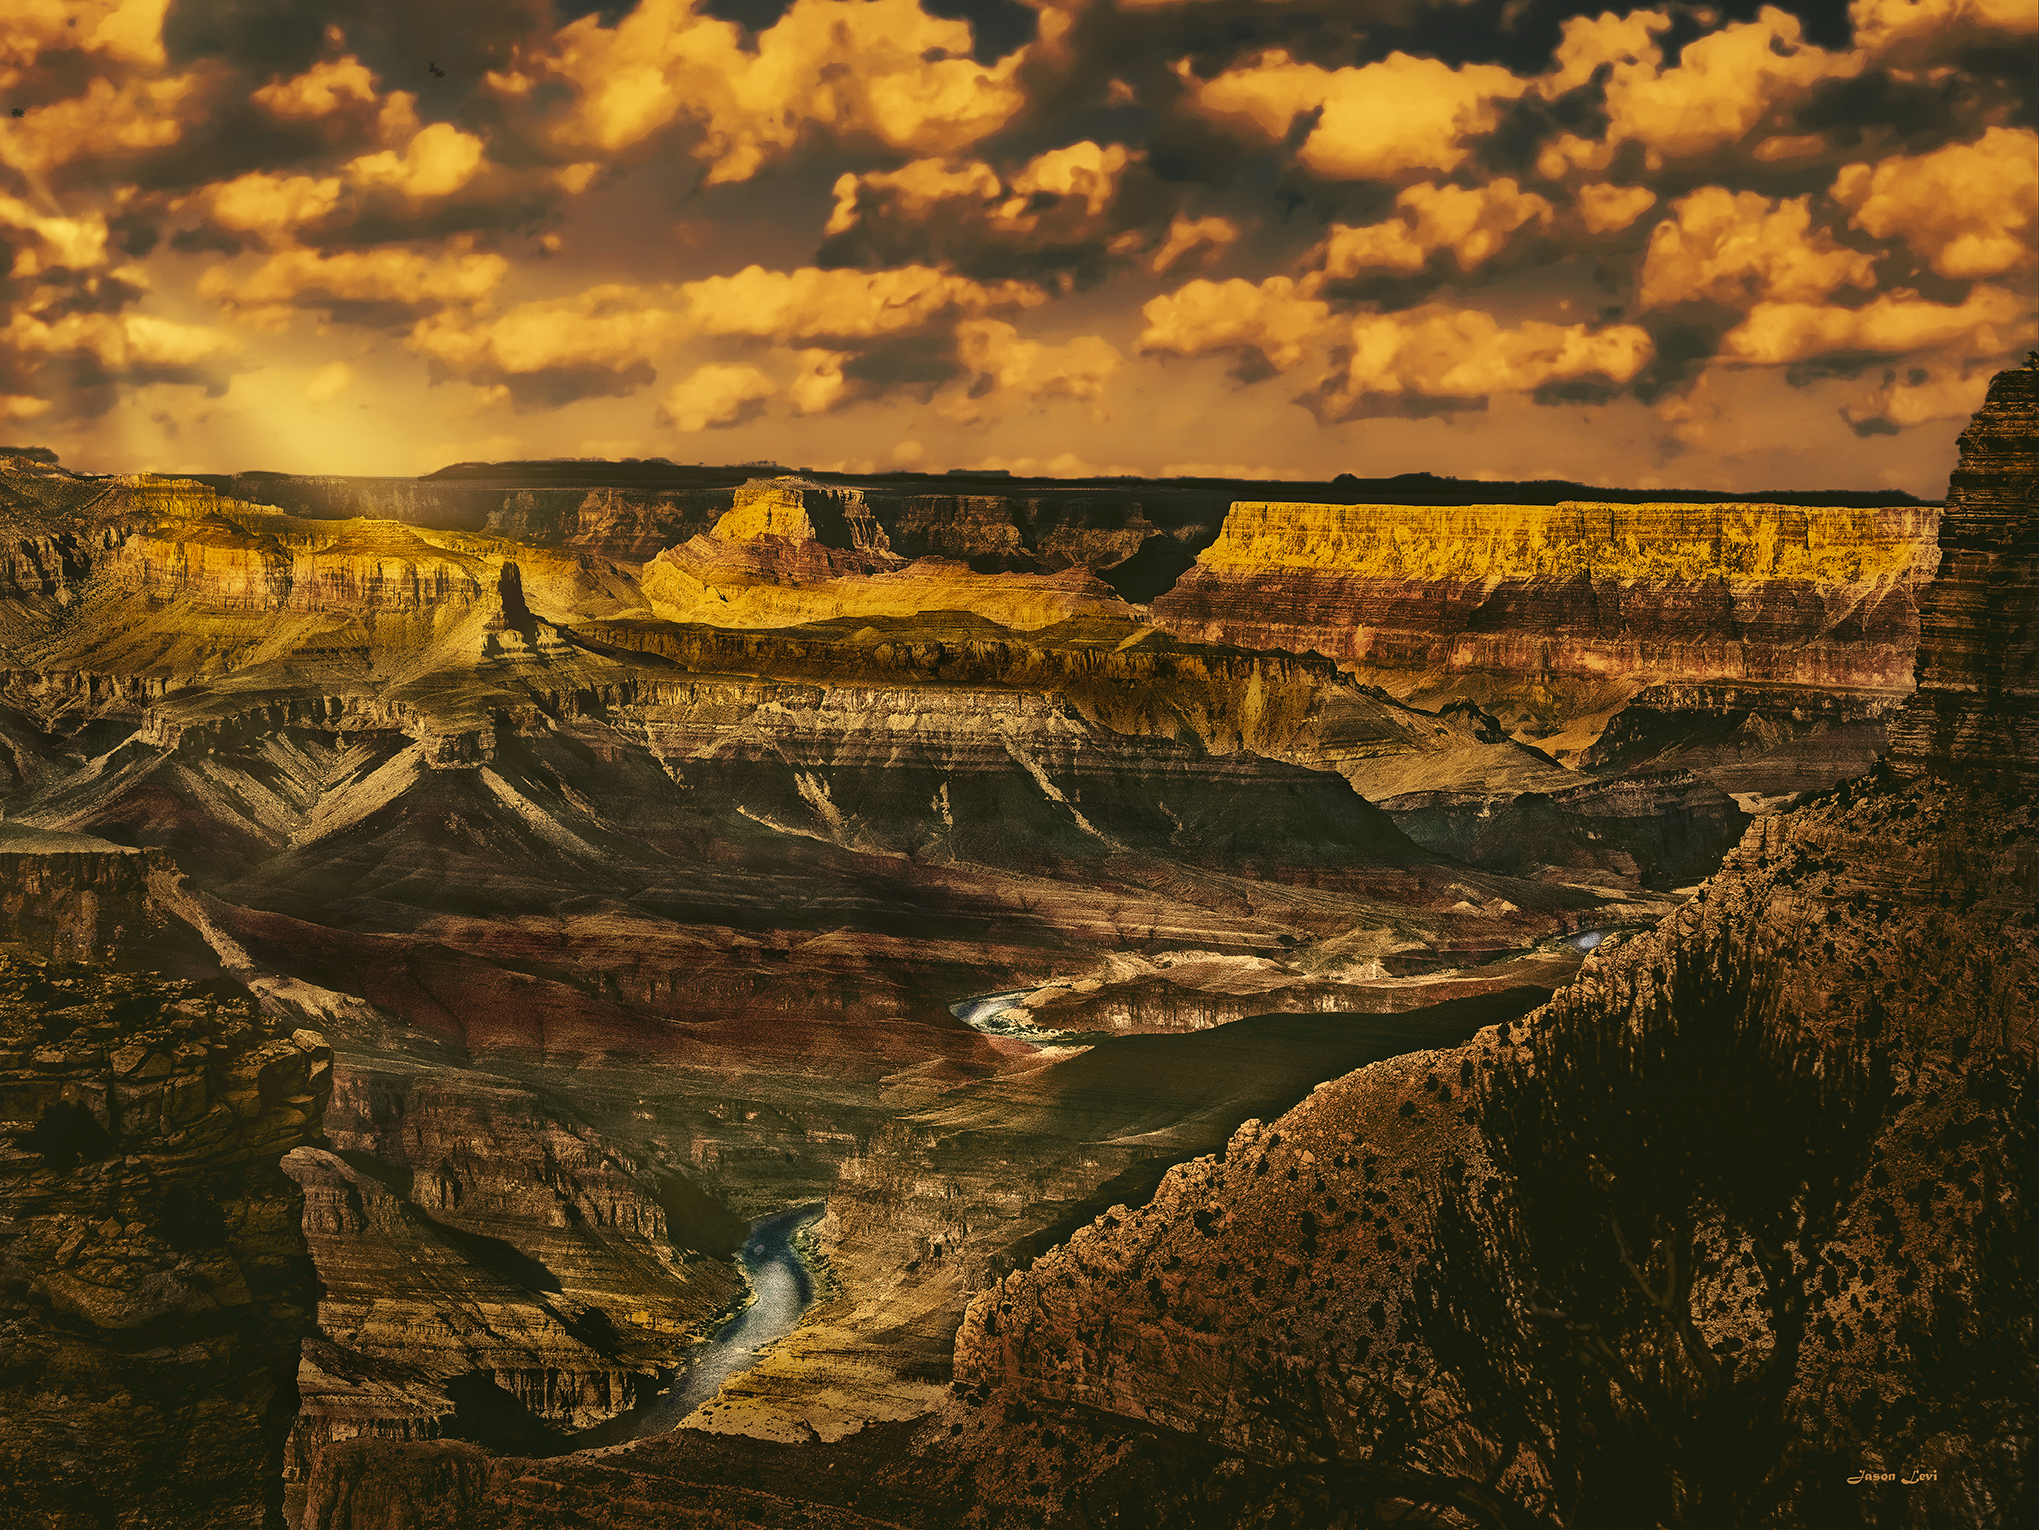 GRAND CANYON: NATURE'S MASTERPIECE